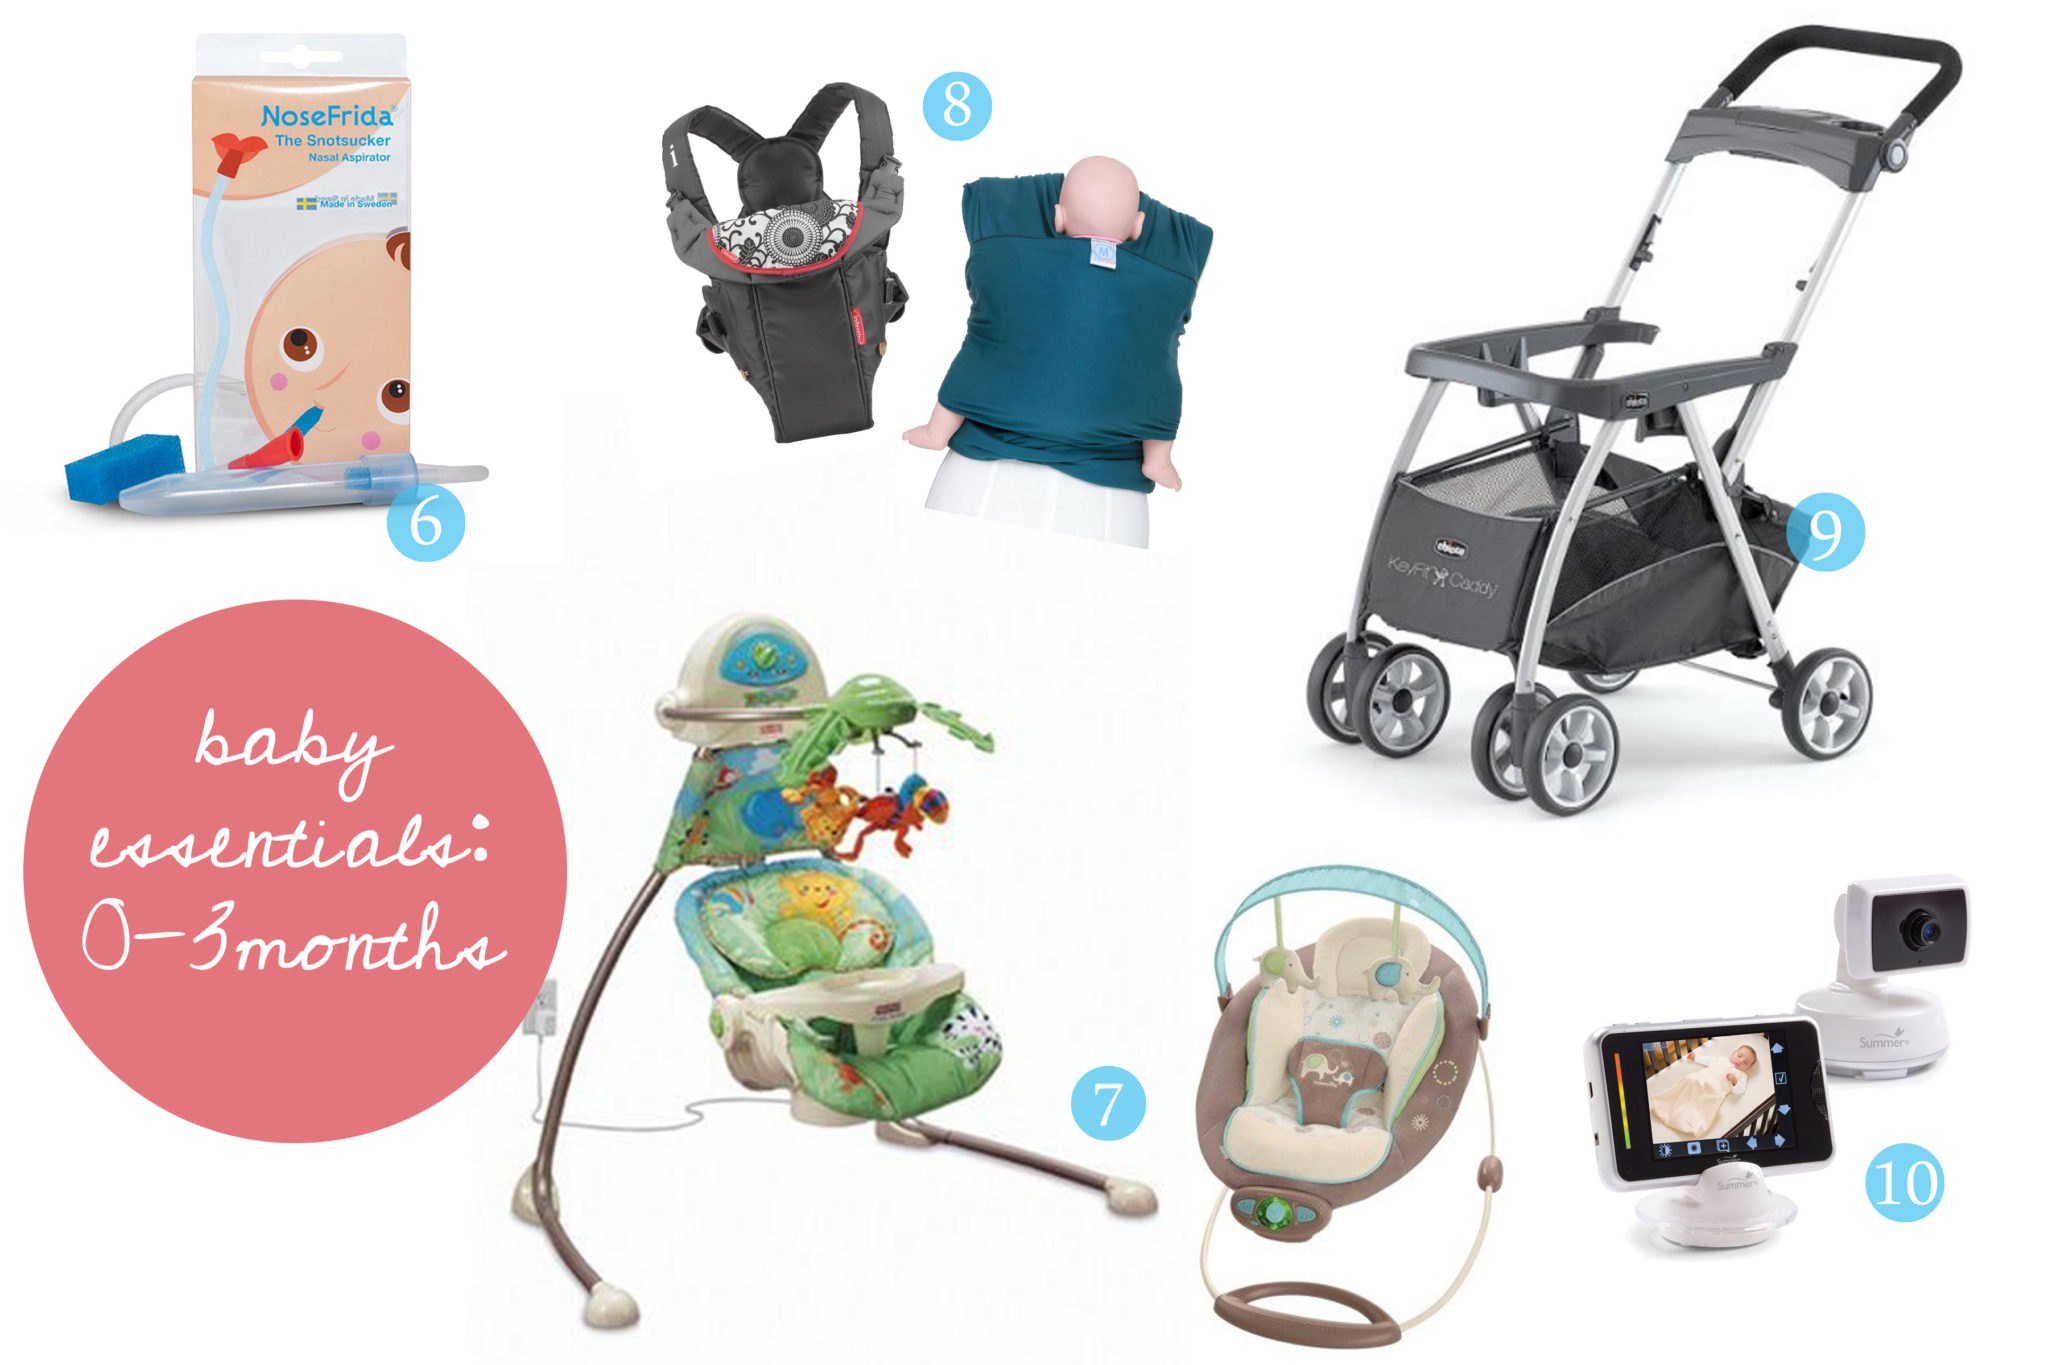 Baby Essentials: 0-3 Months